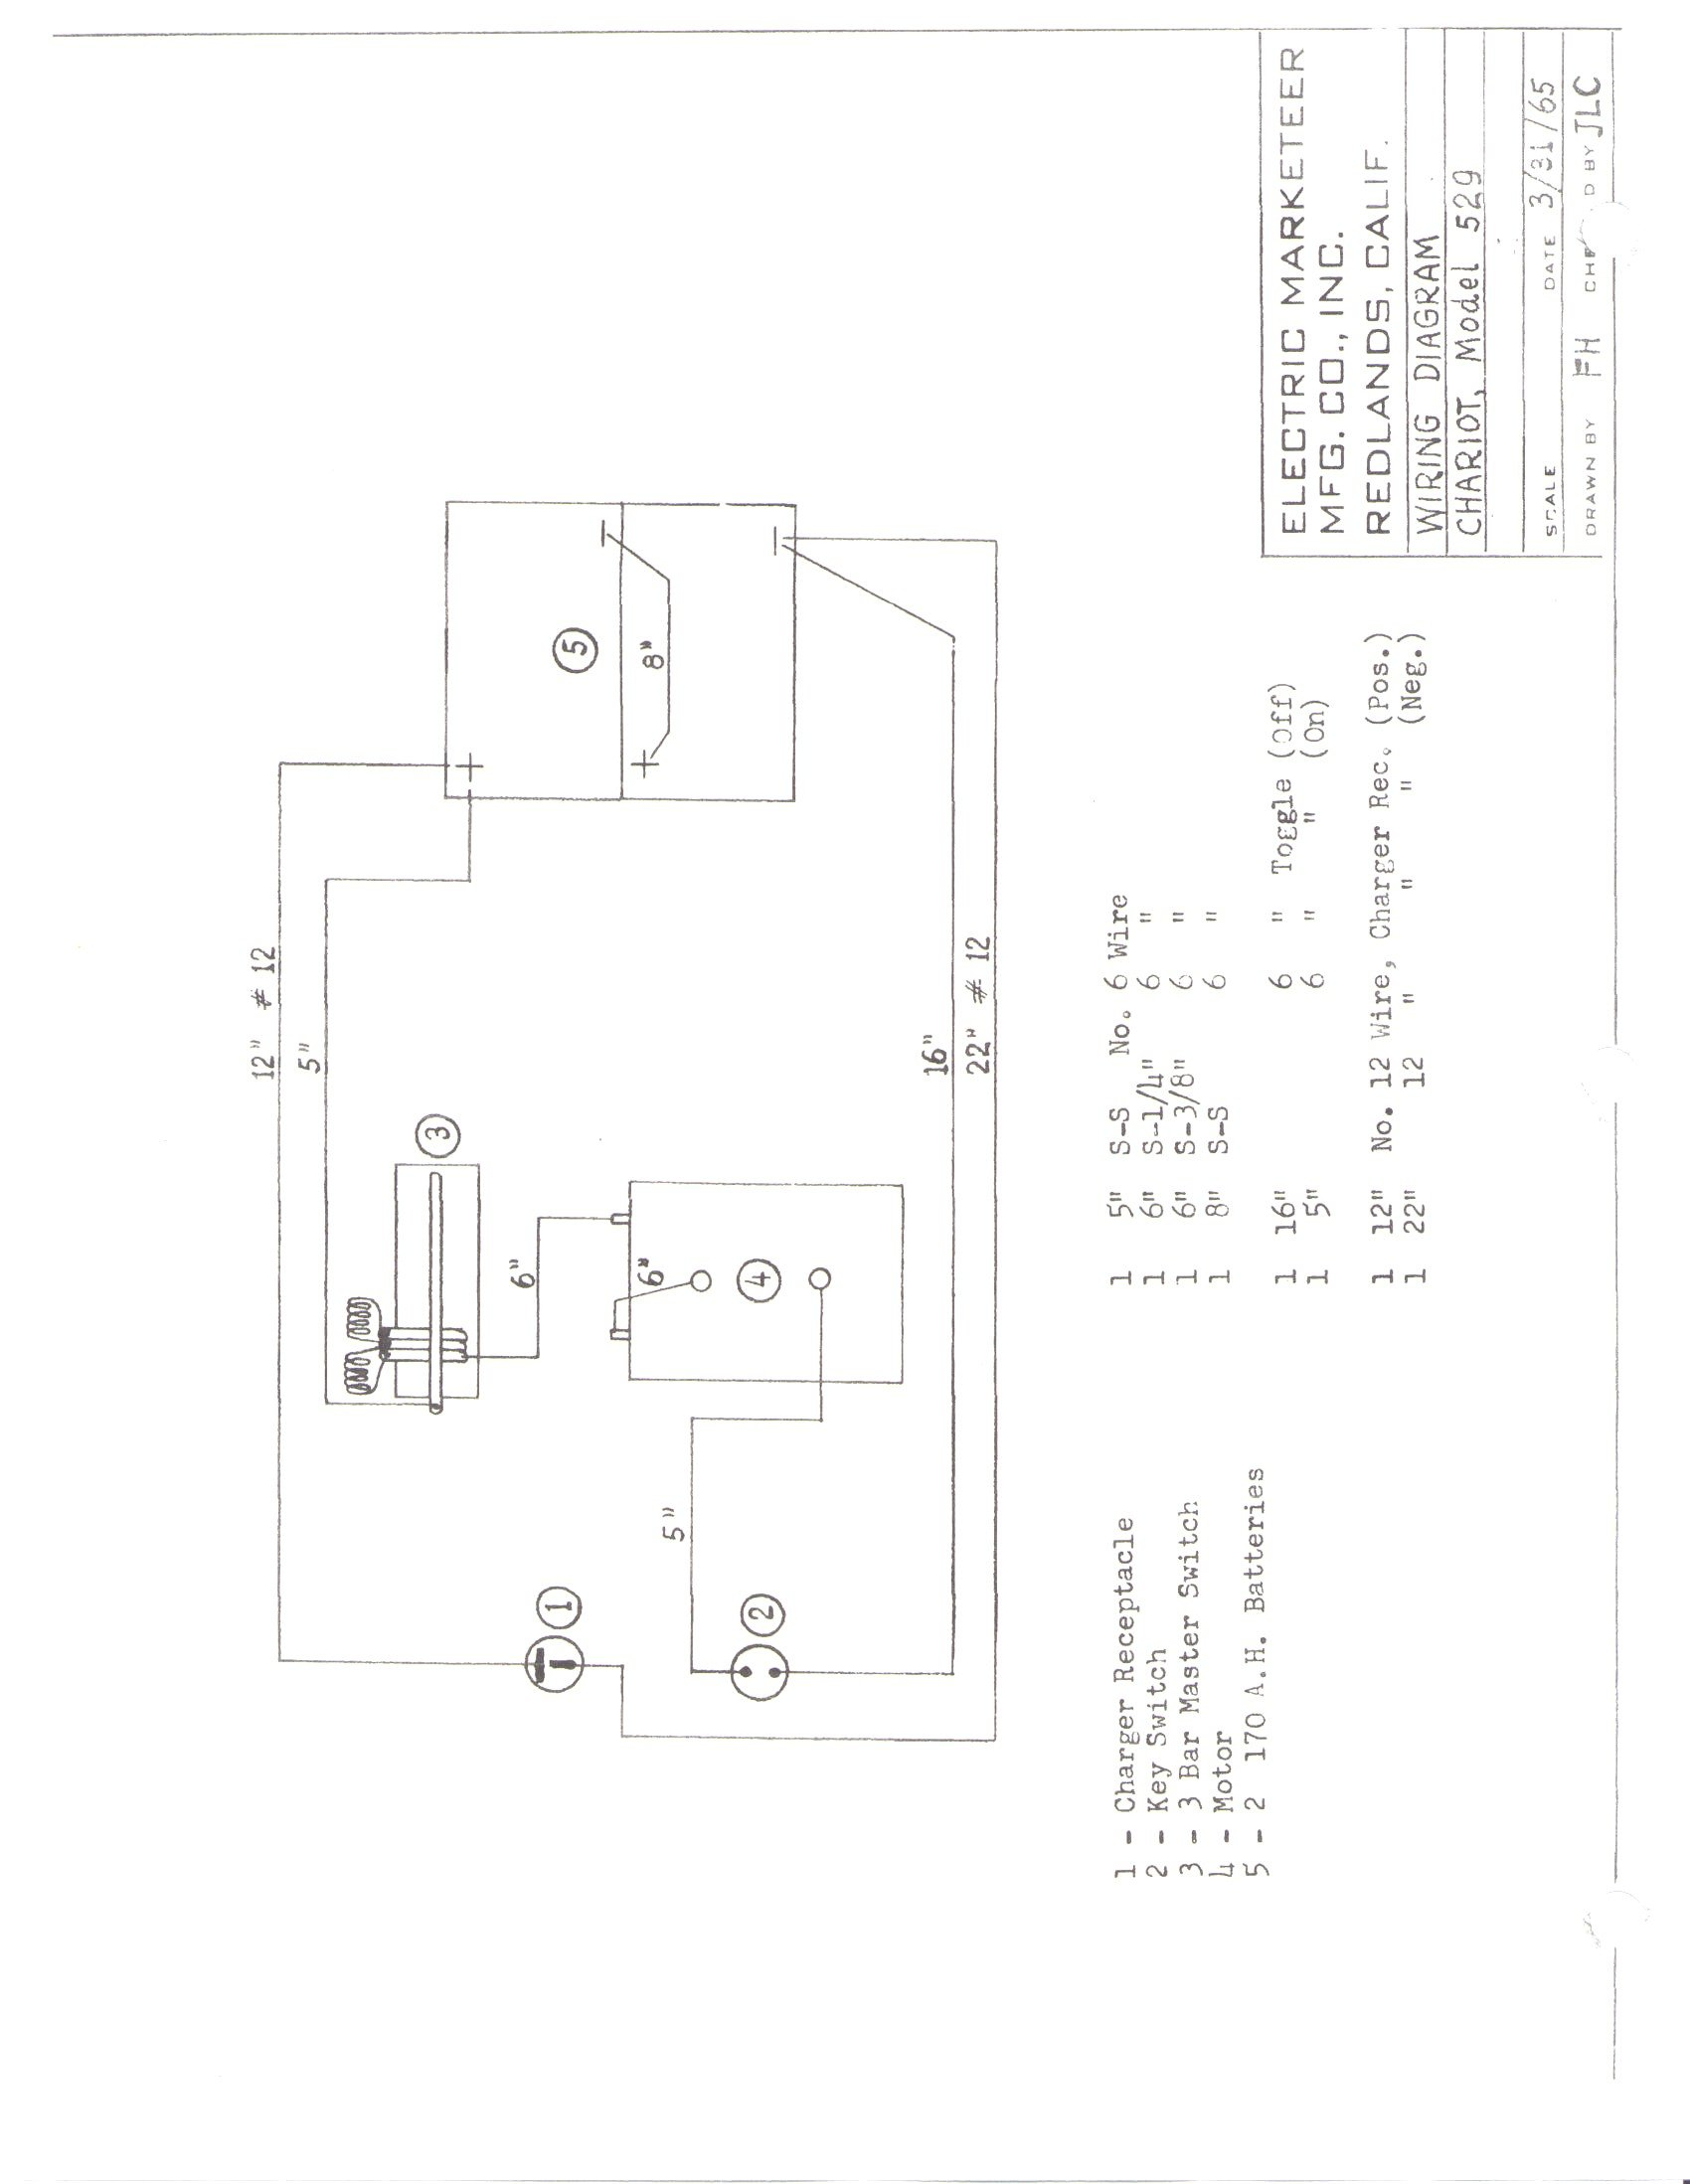 wiring diagram for electric golf carts wiring diagram website